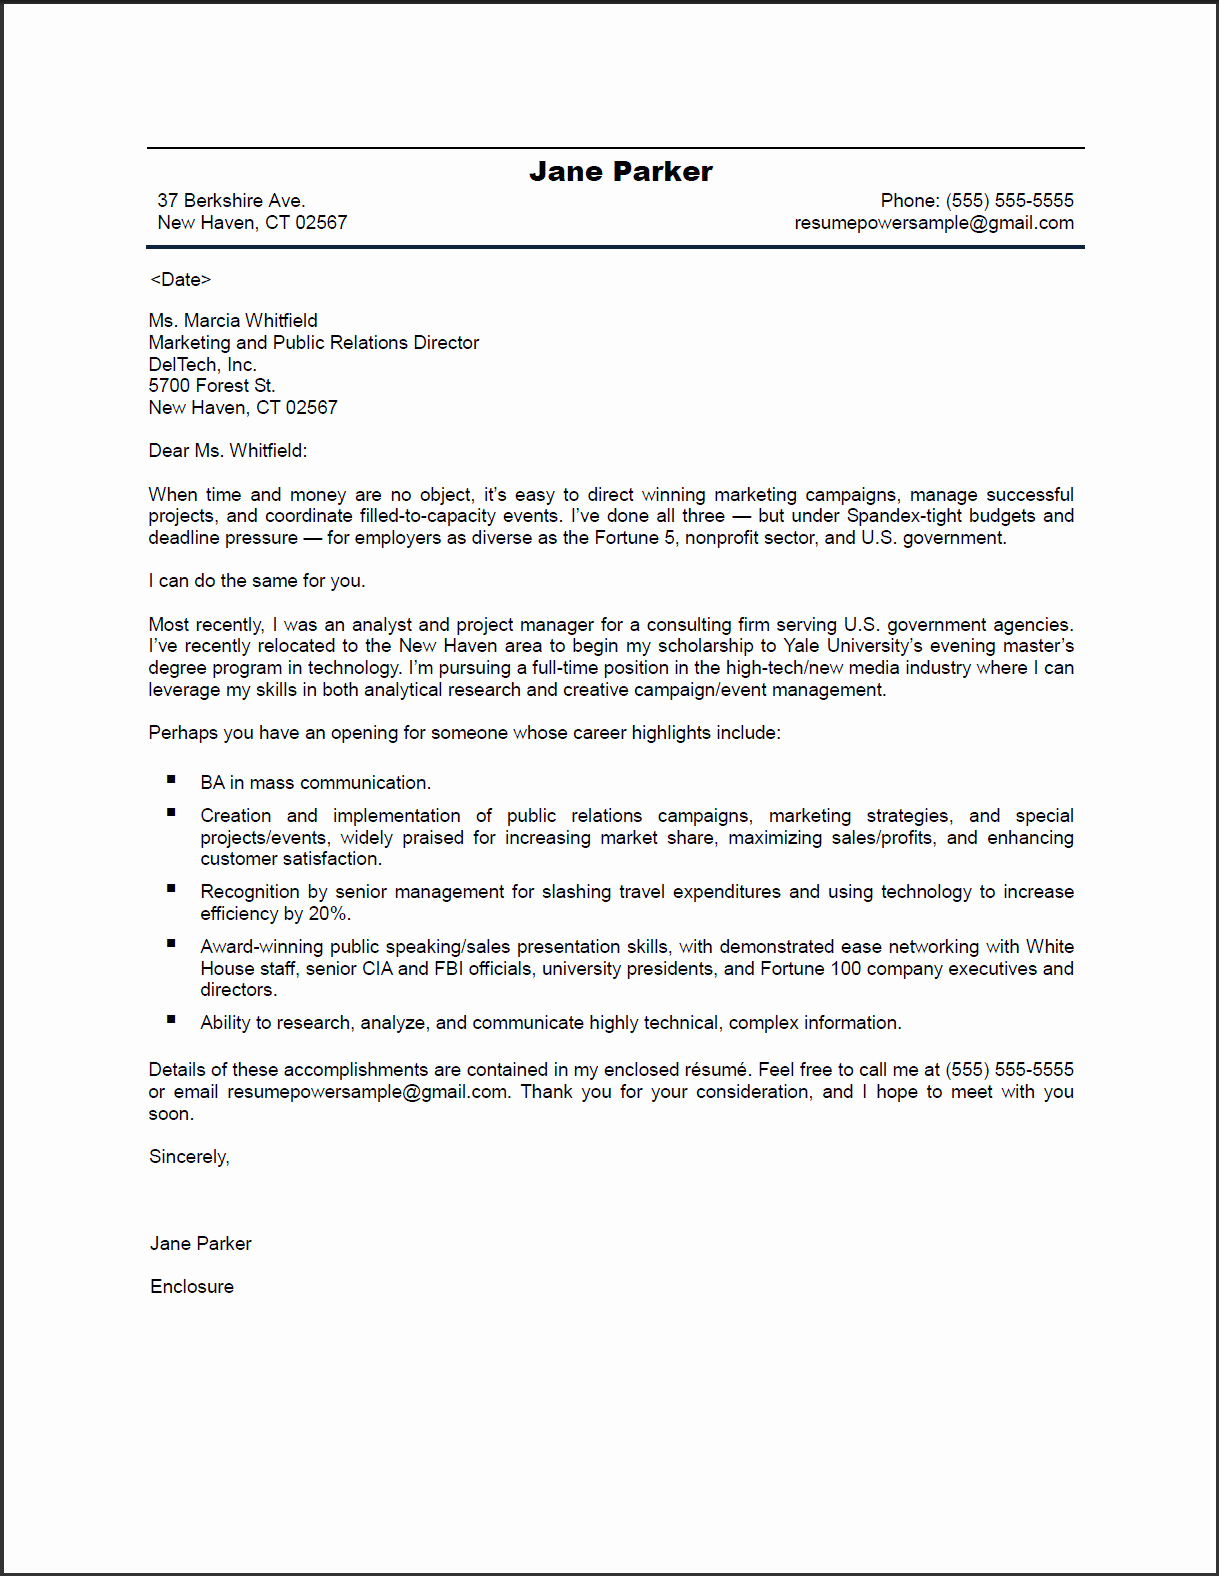 Scholarship Thank You Letter Template - Resume and Cover Letter Template Best Broward Schools Homework